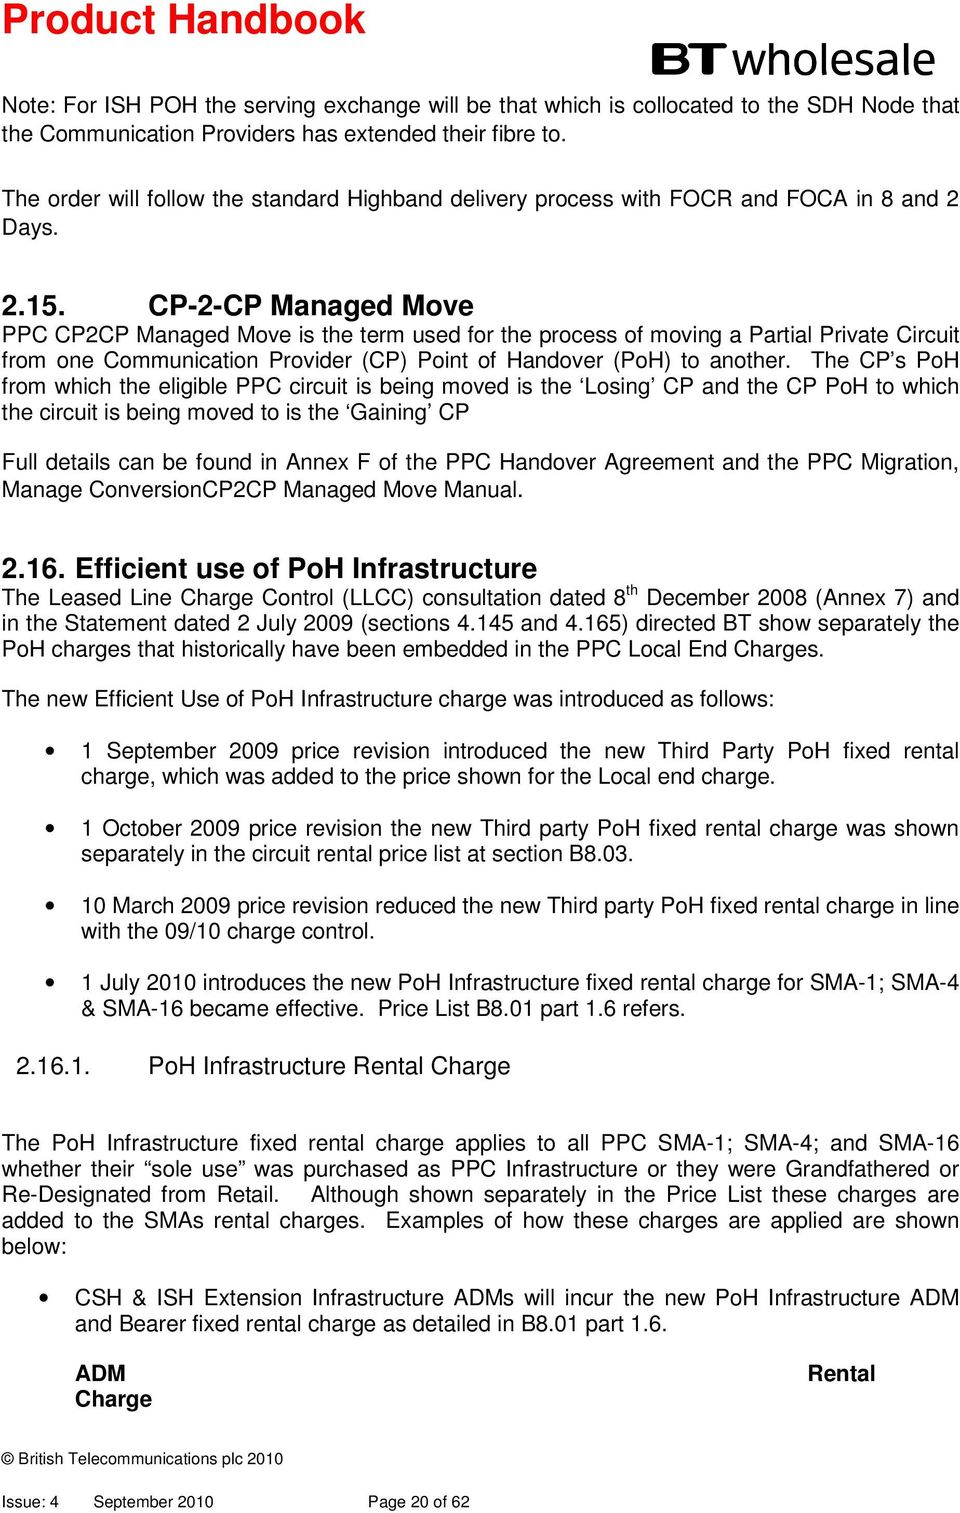 CP-2-CP Managed Move PPC CP2CP Managed Move is the term used for the process of moving a Partial Private Circuit from one Communication Provider (CP) Point of Handover (PoH) to another.